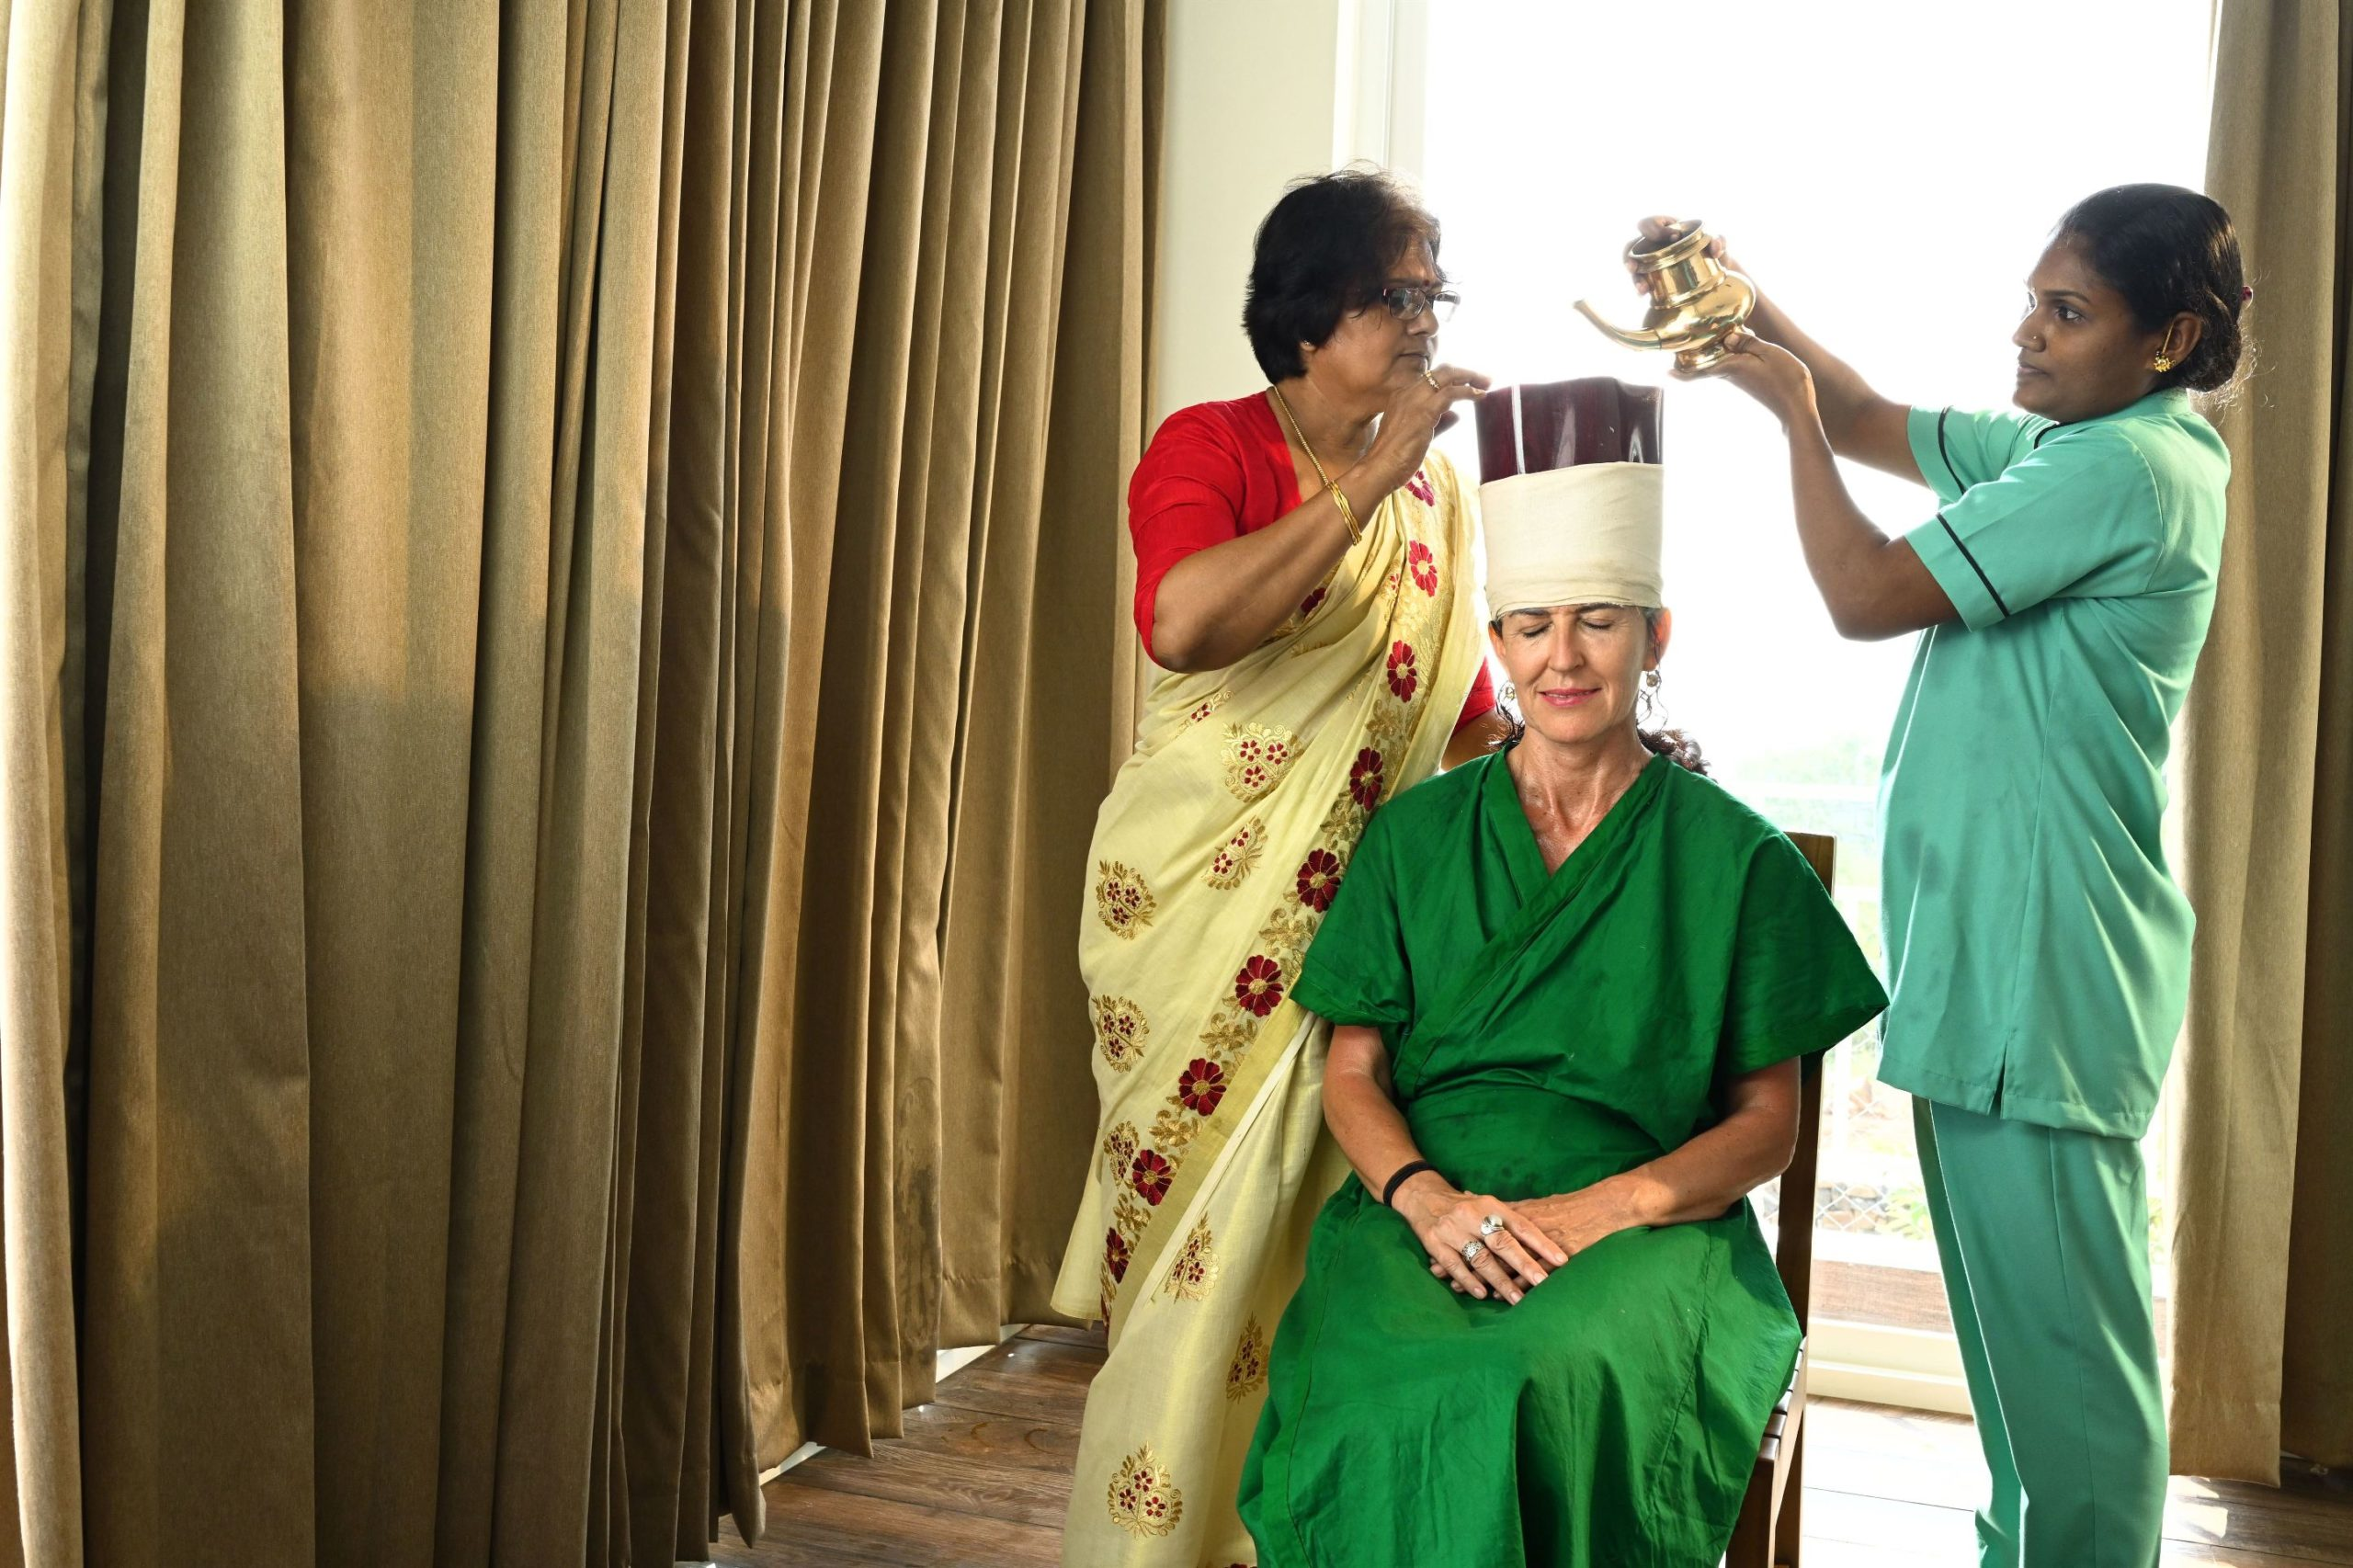 Shirodhara Ayurveda treatment in Kerala